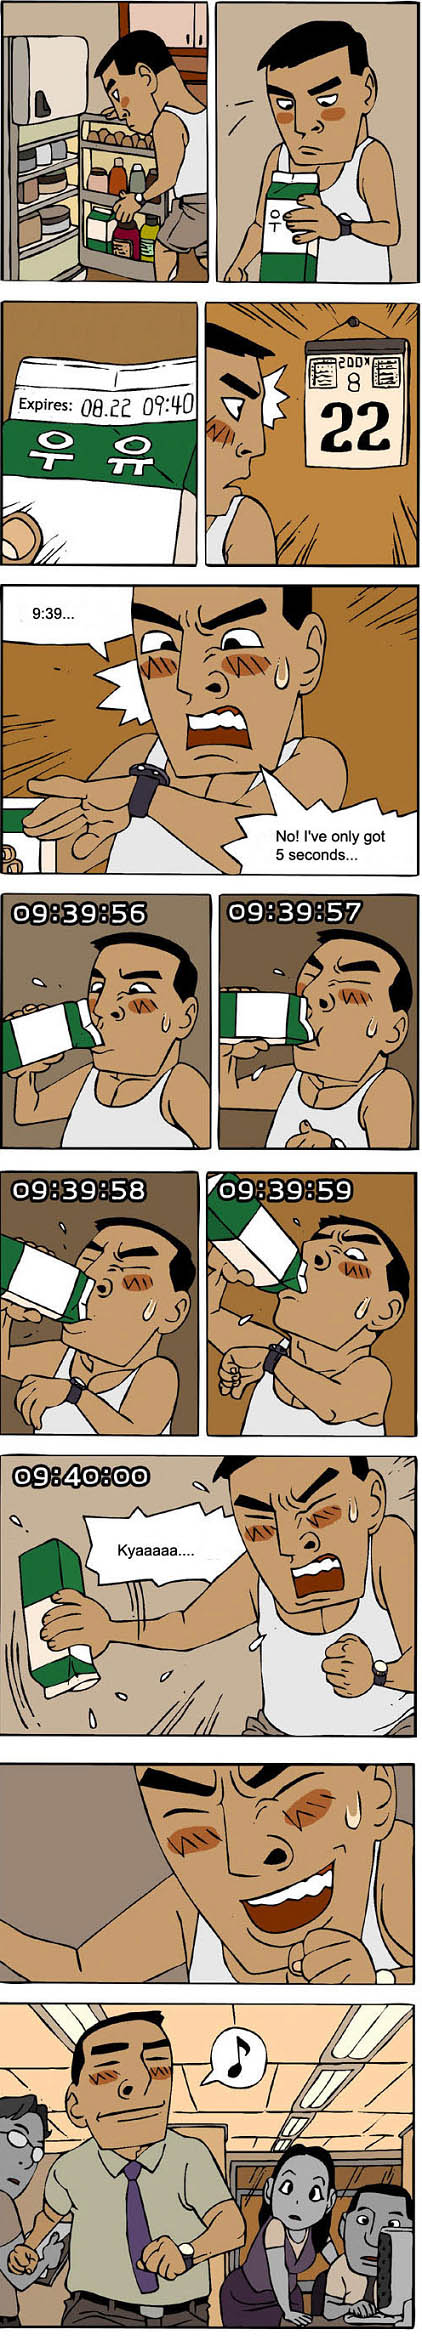 Funny Comic: Chugging Milk Before it Expires